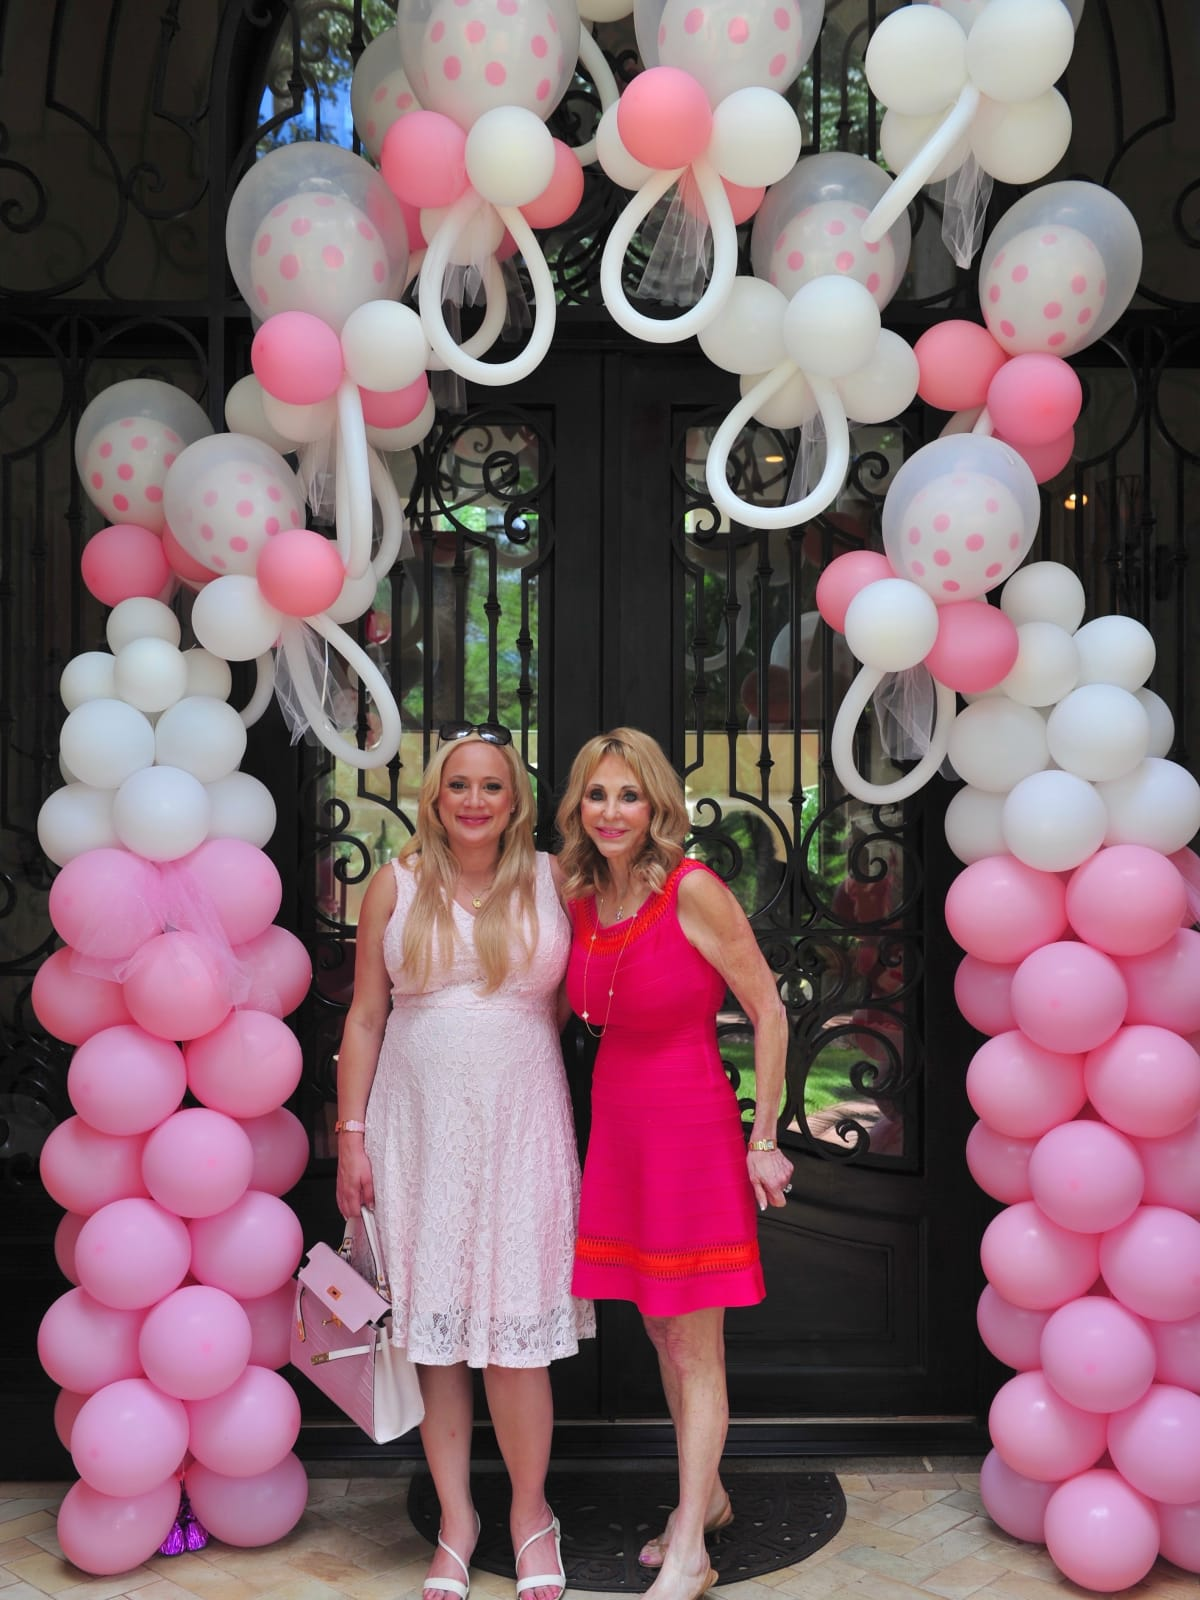 Erica Rose Baby Shower, June 2016, Erica Rose, Barbara Markman